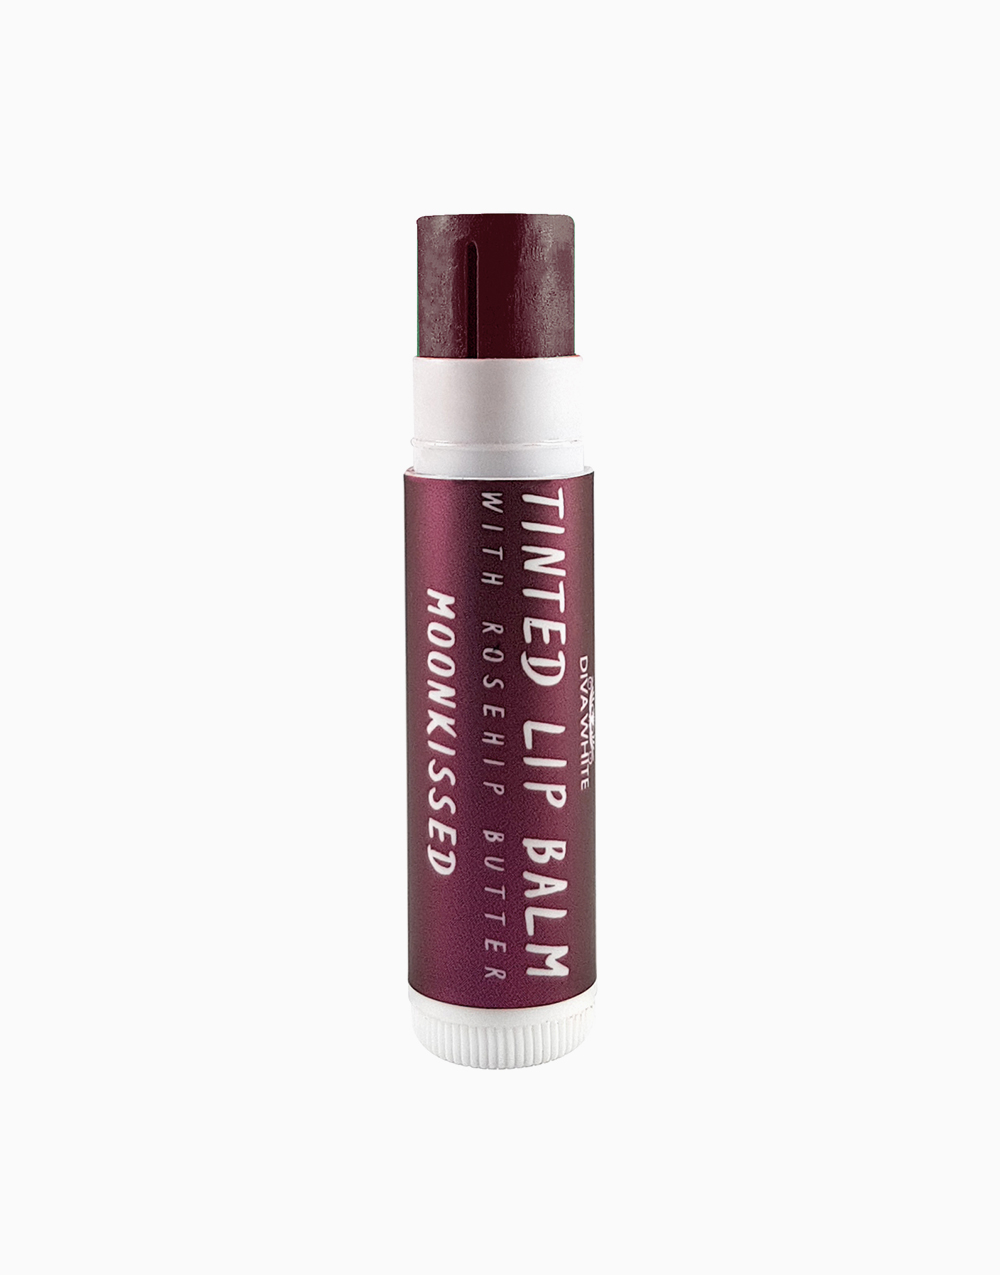 Tinted Lip Balm with Rosehip Butter in Moonkissed by Diva White